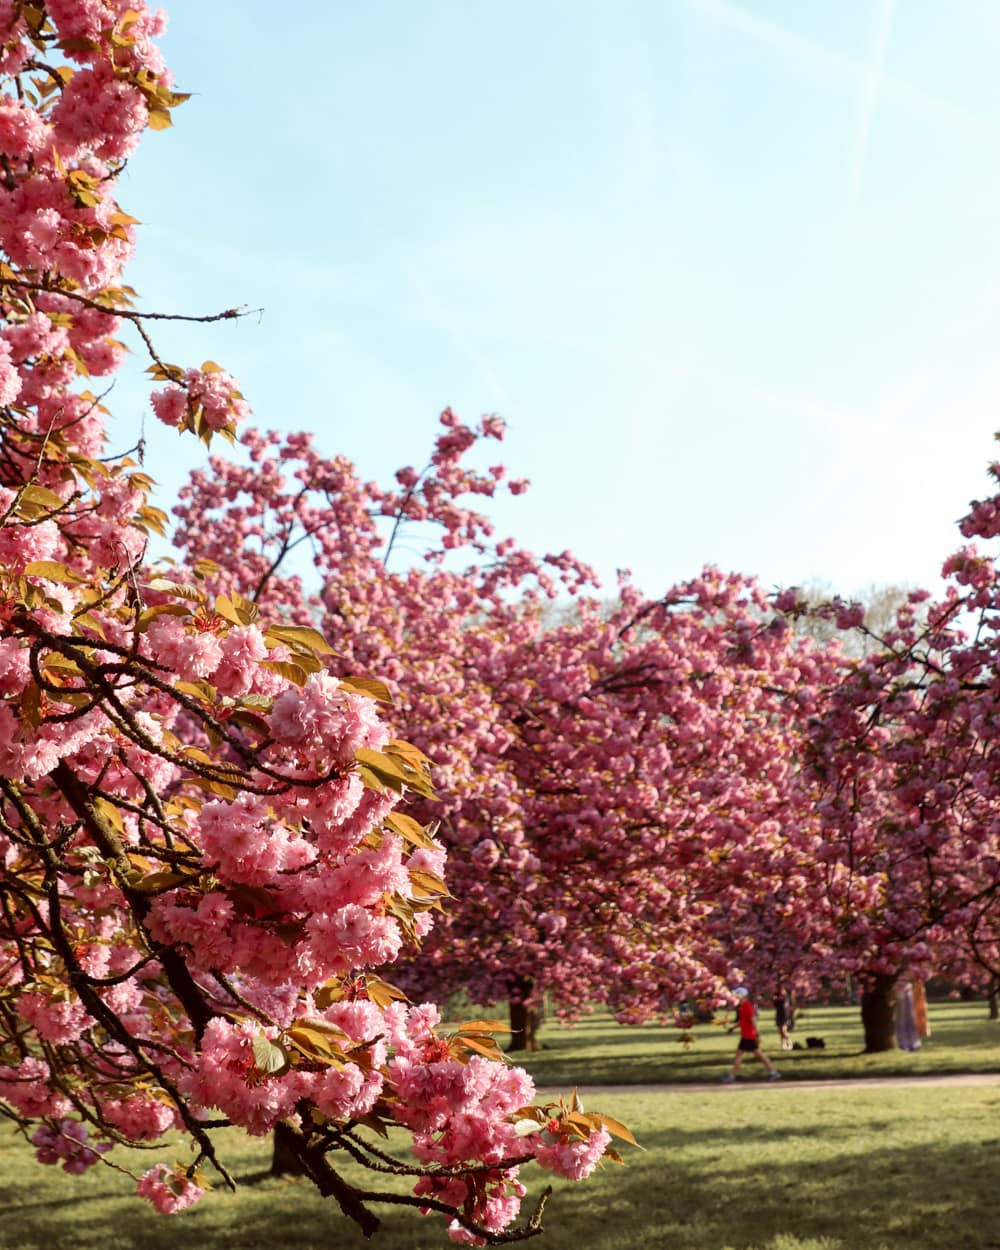 Where to find Cherry Blossoms in Paris